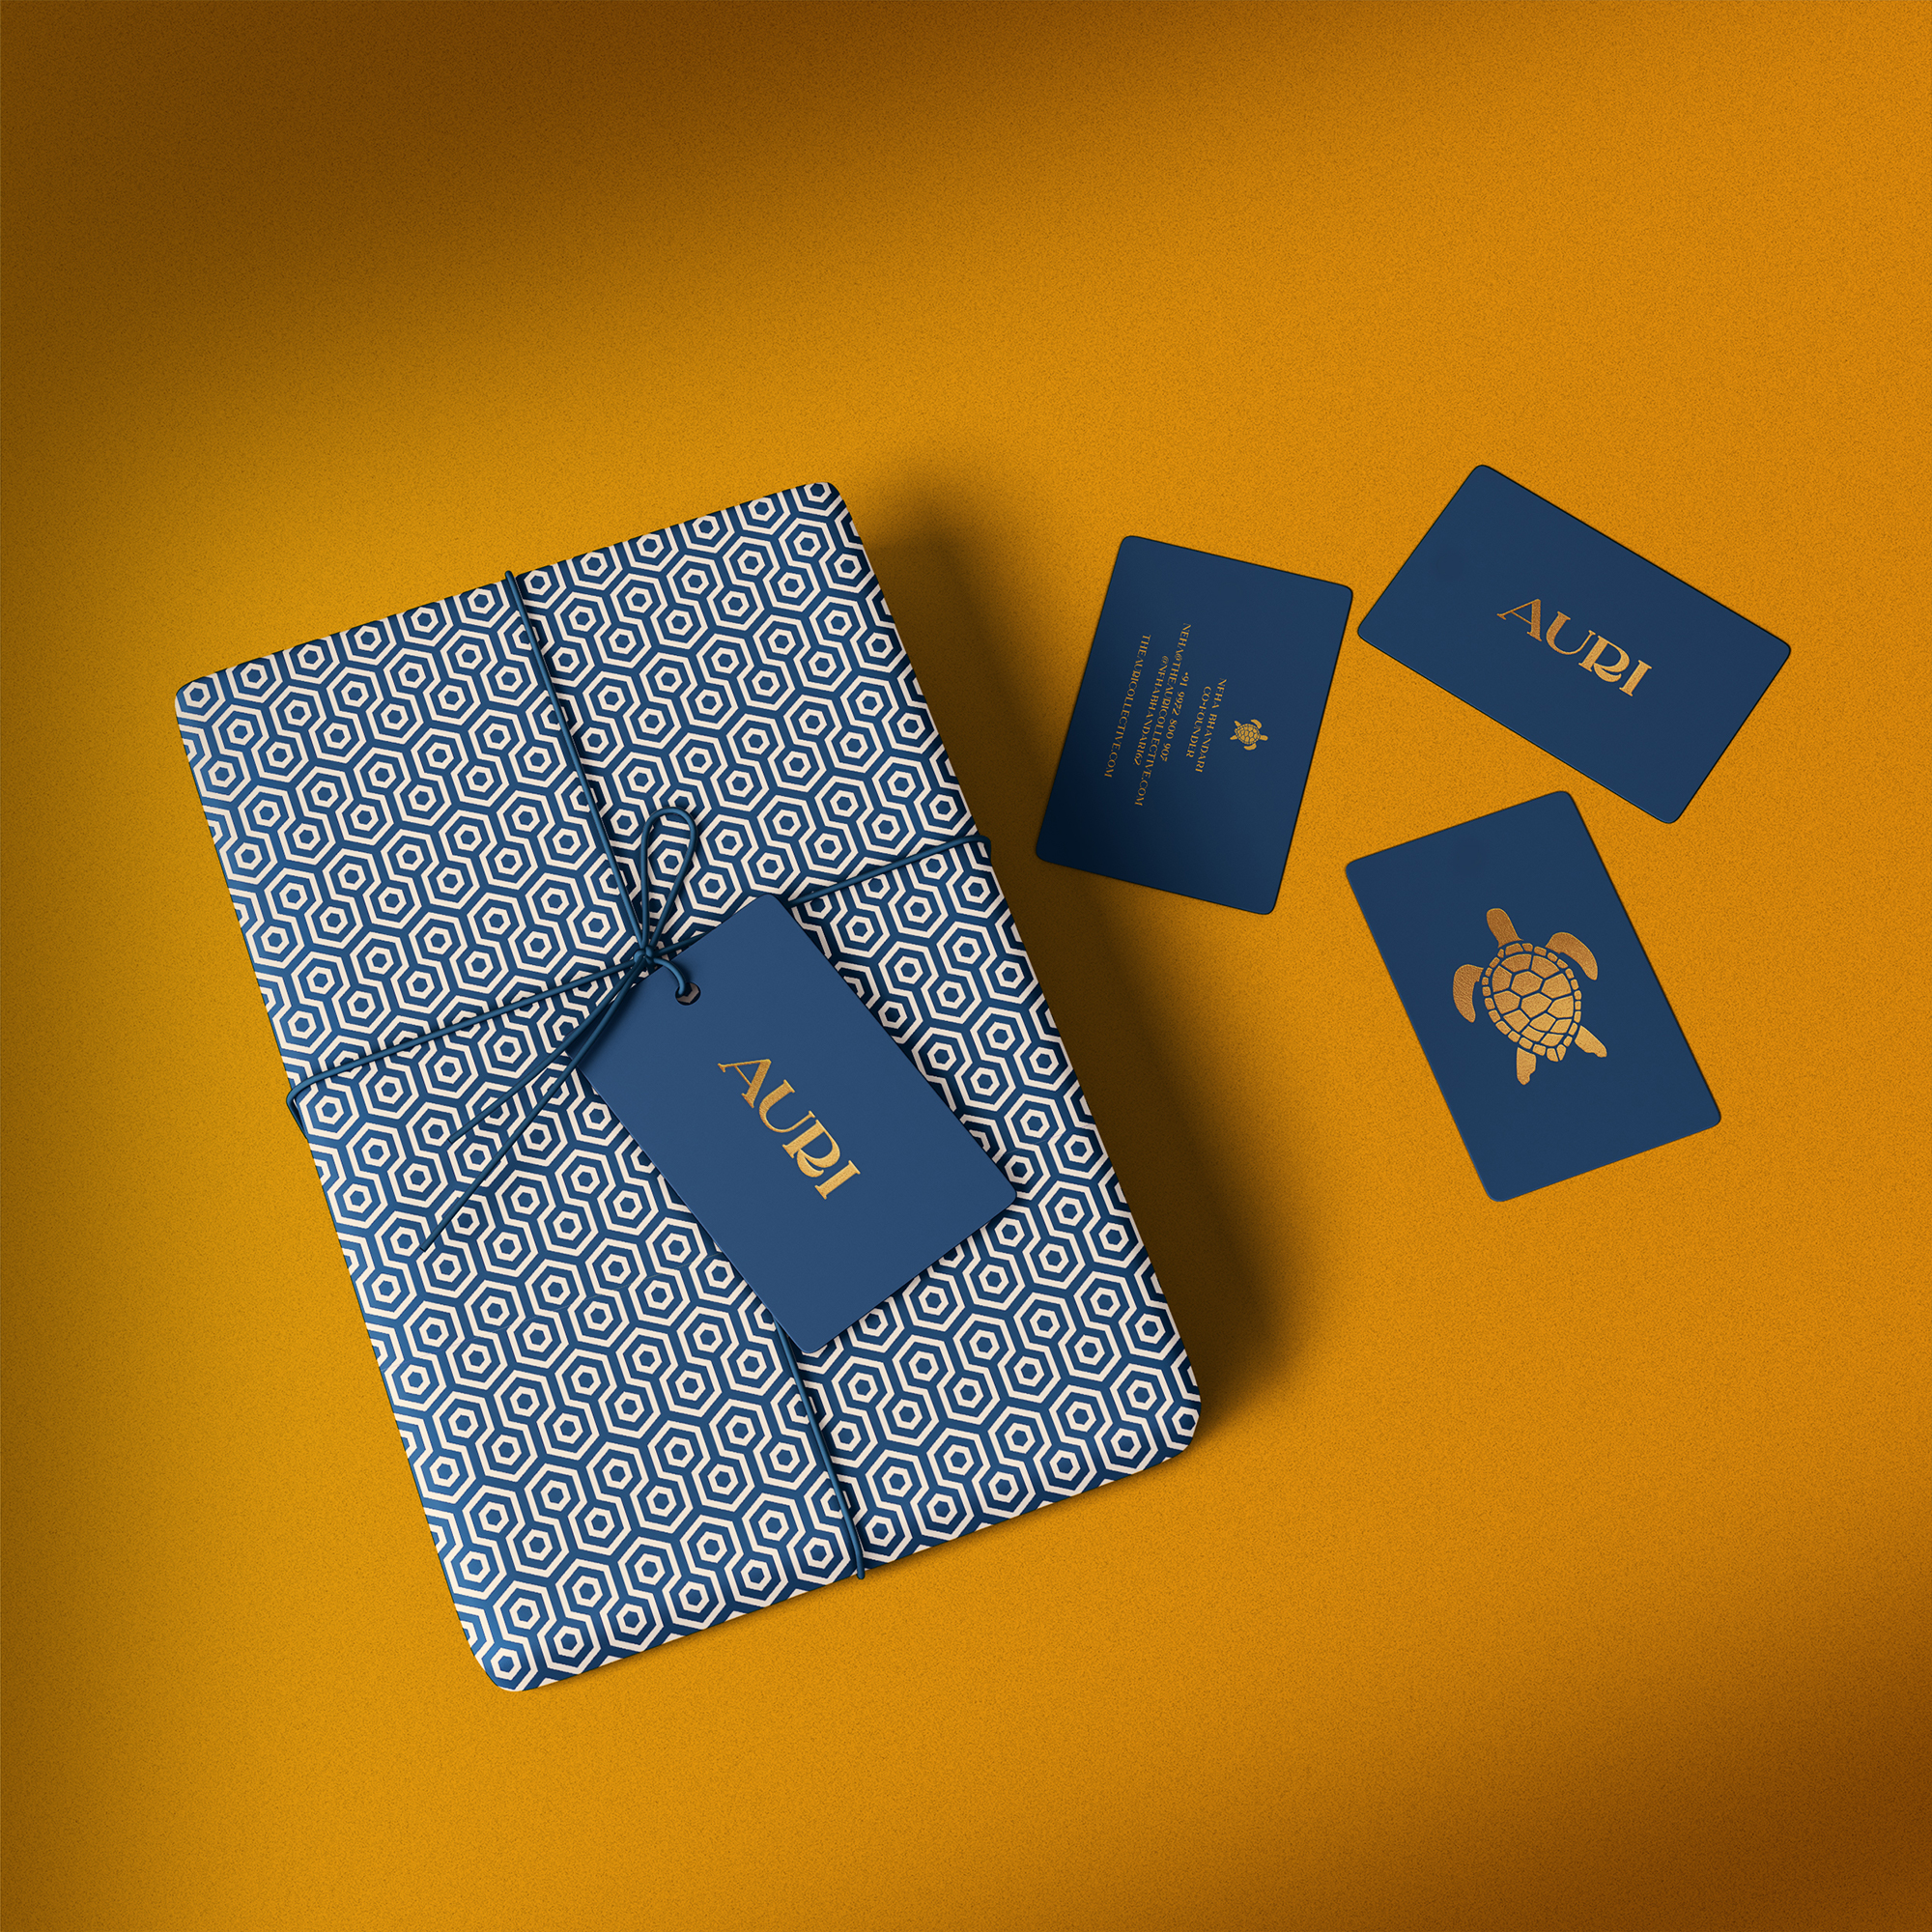 Auri business cards and packaging